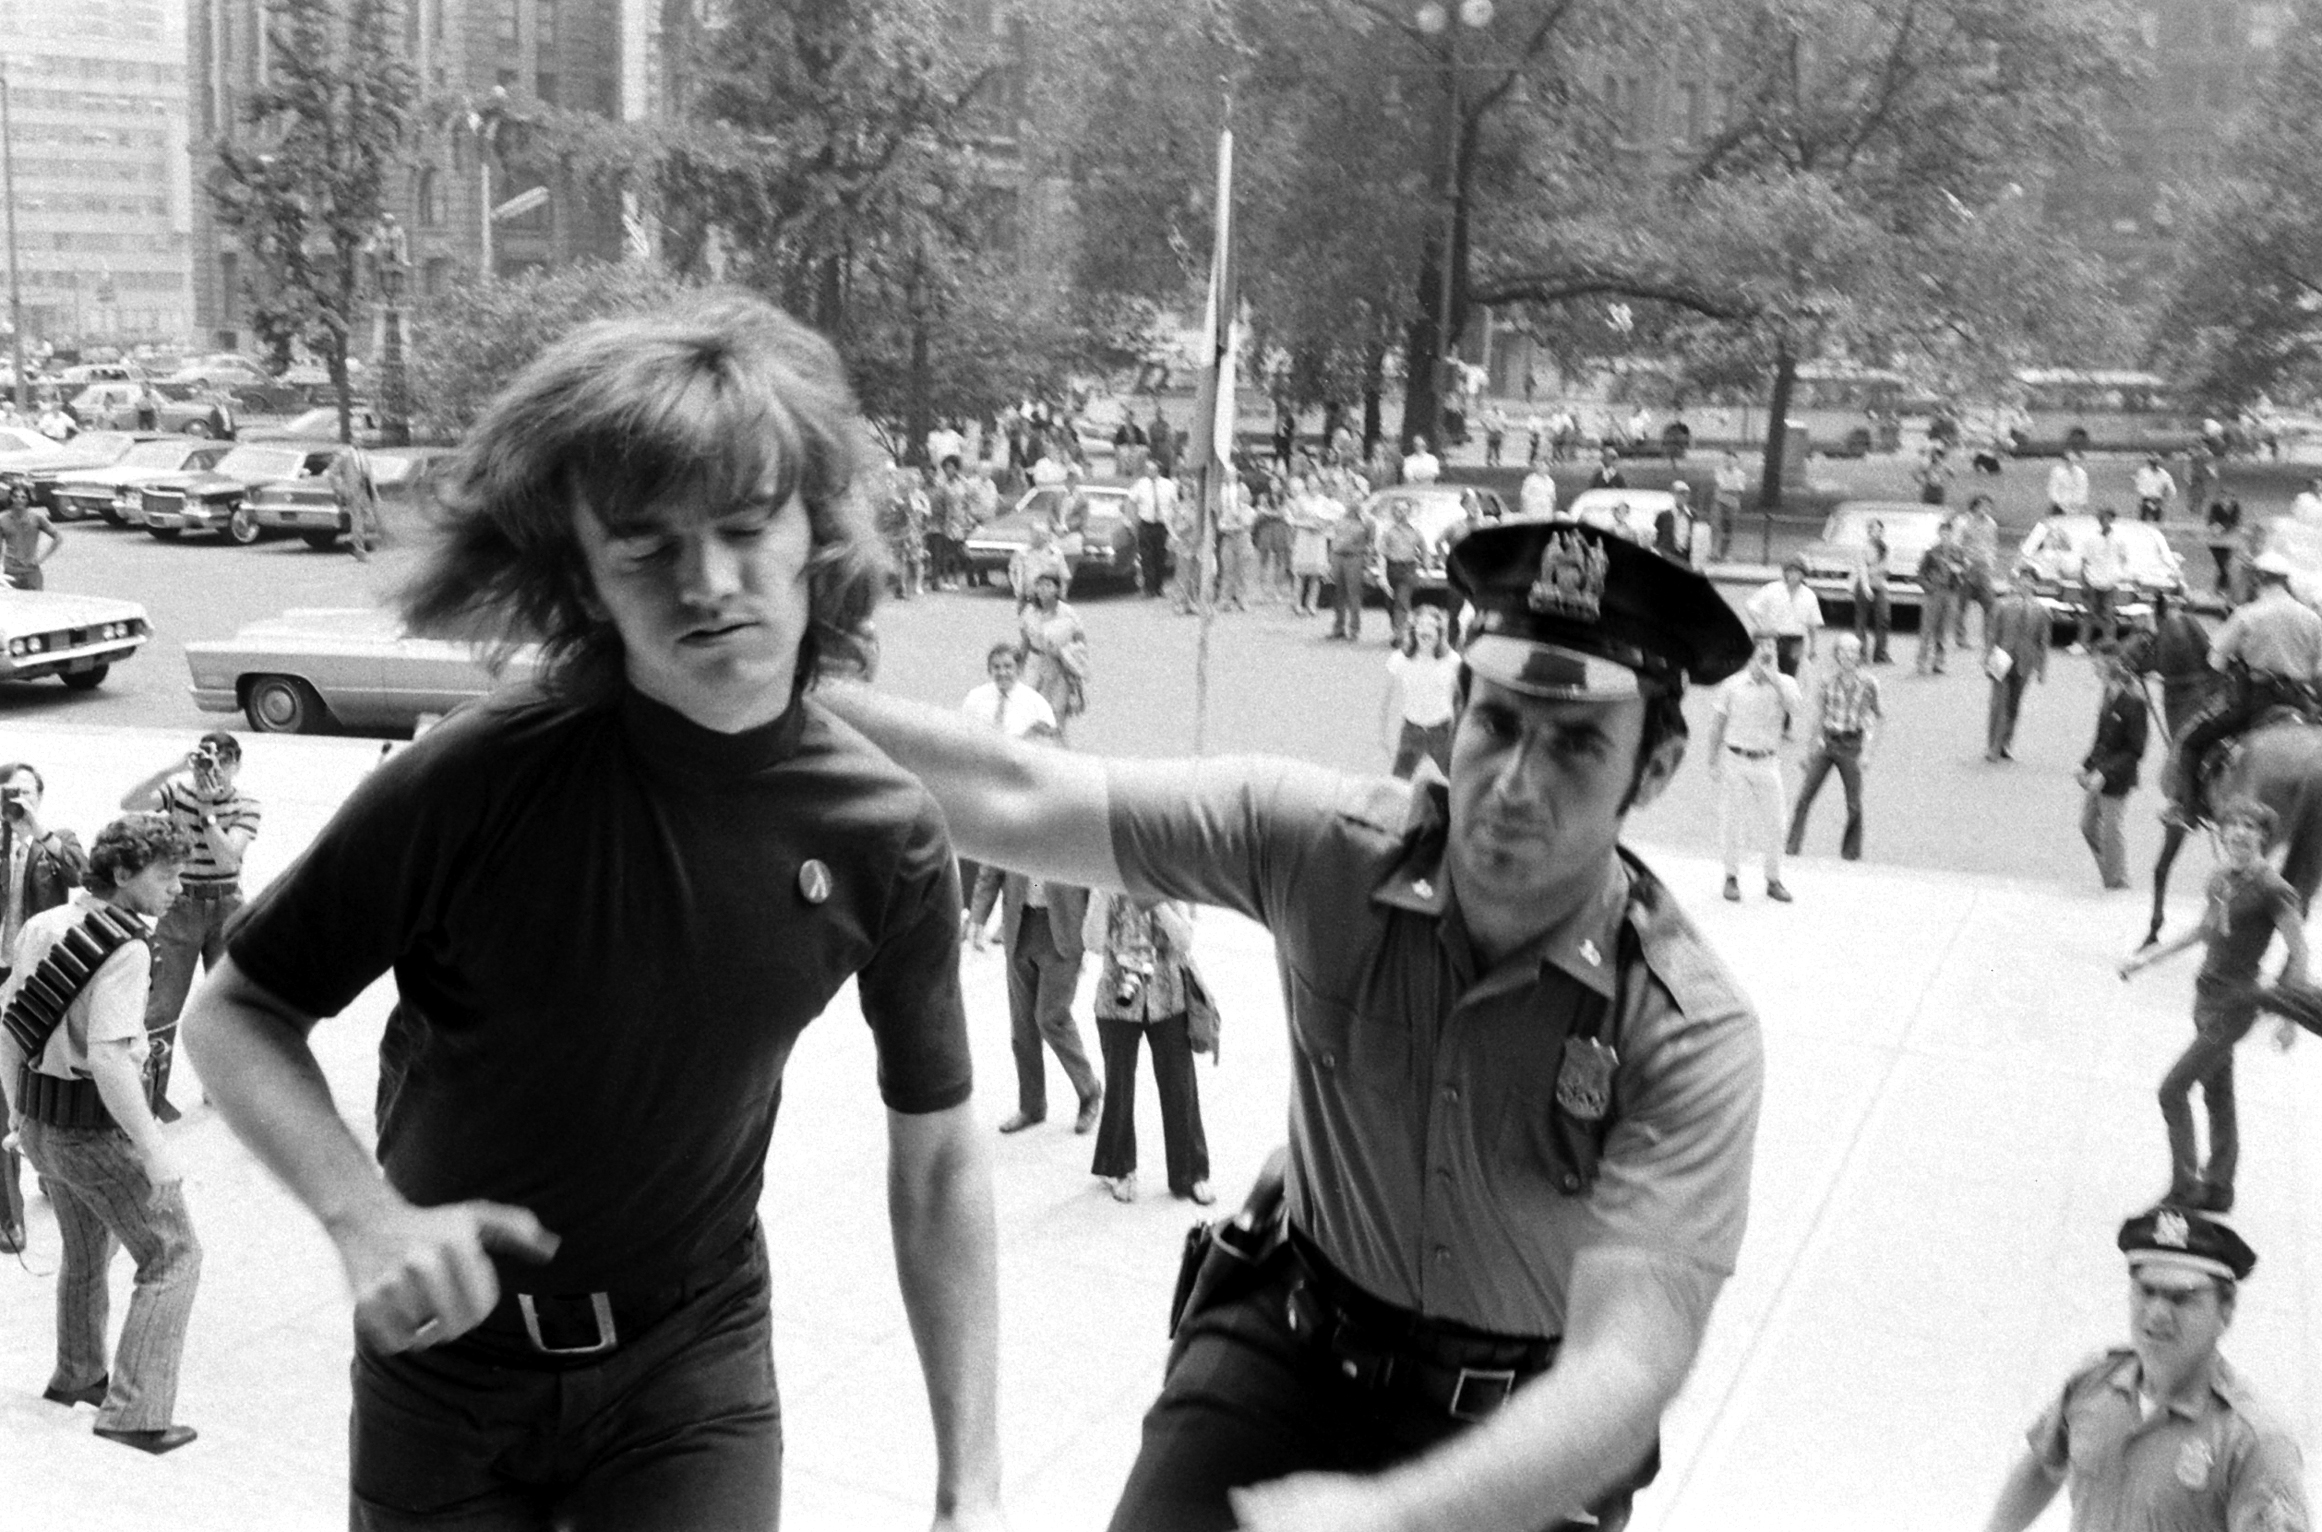 <b>Caption from LIFE</b> Collared by a patrolman after he deliberately crossed police barricades at New York's City Hall, Gay Activists Alliance President Jim Owles submits to arrest. Members of his organization were protesting City Council reluctance to debate a fair employment bill for homosexuals.